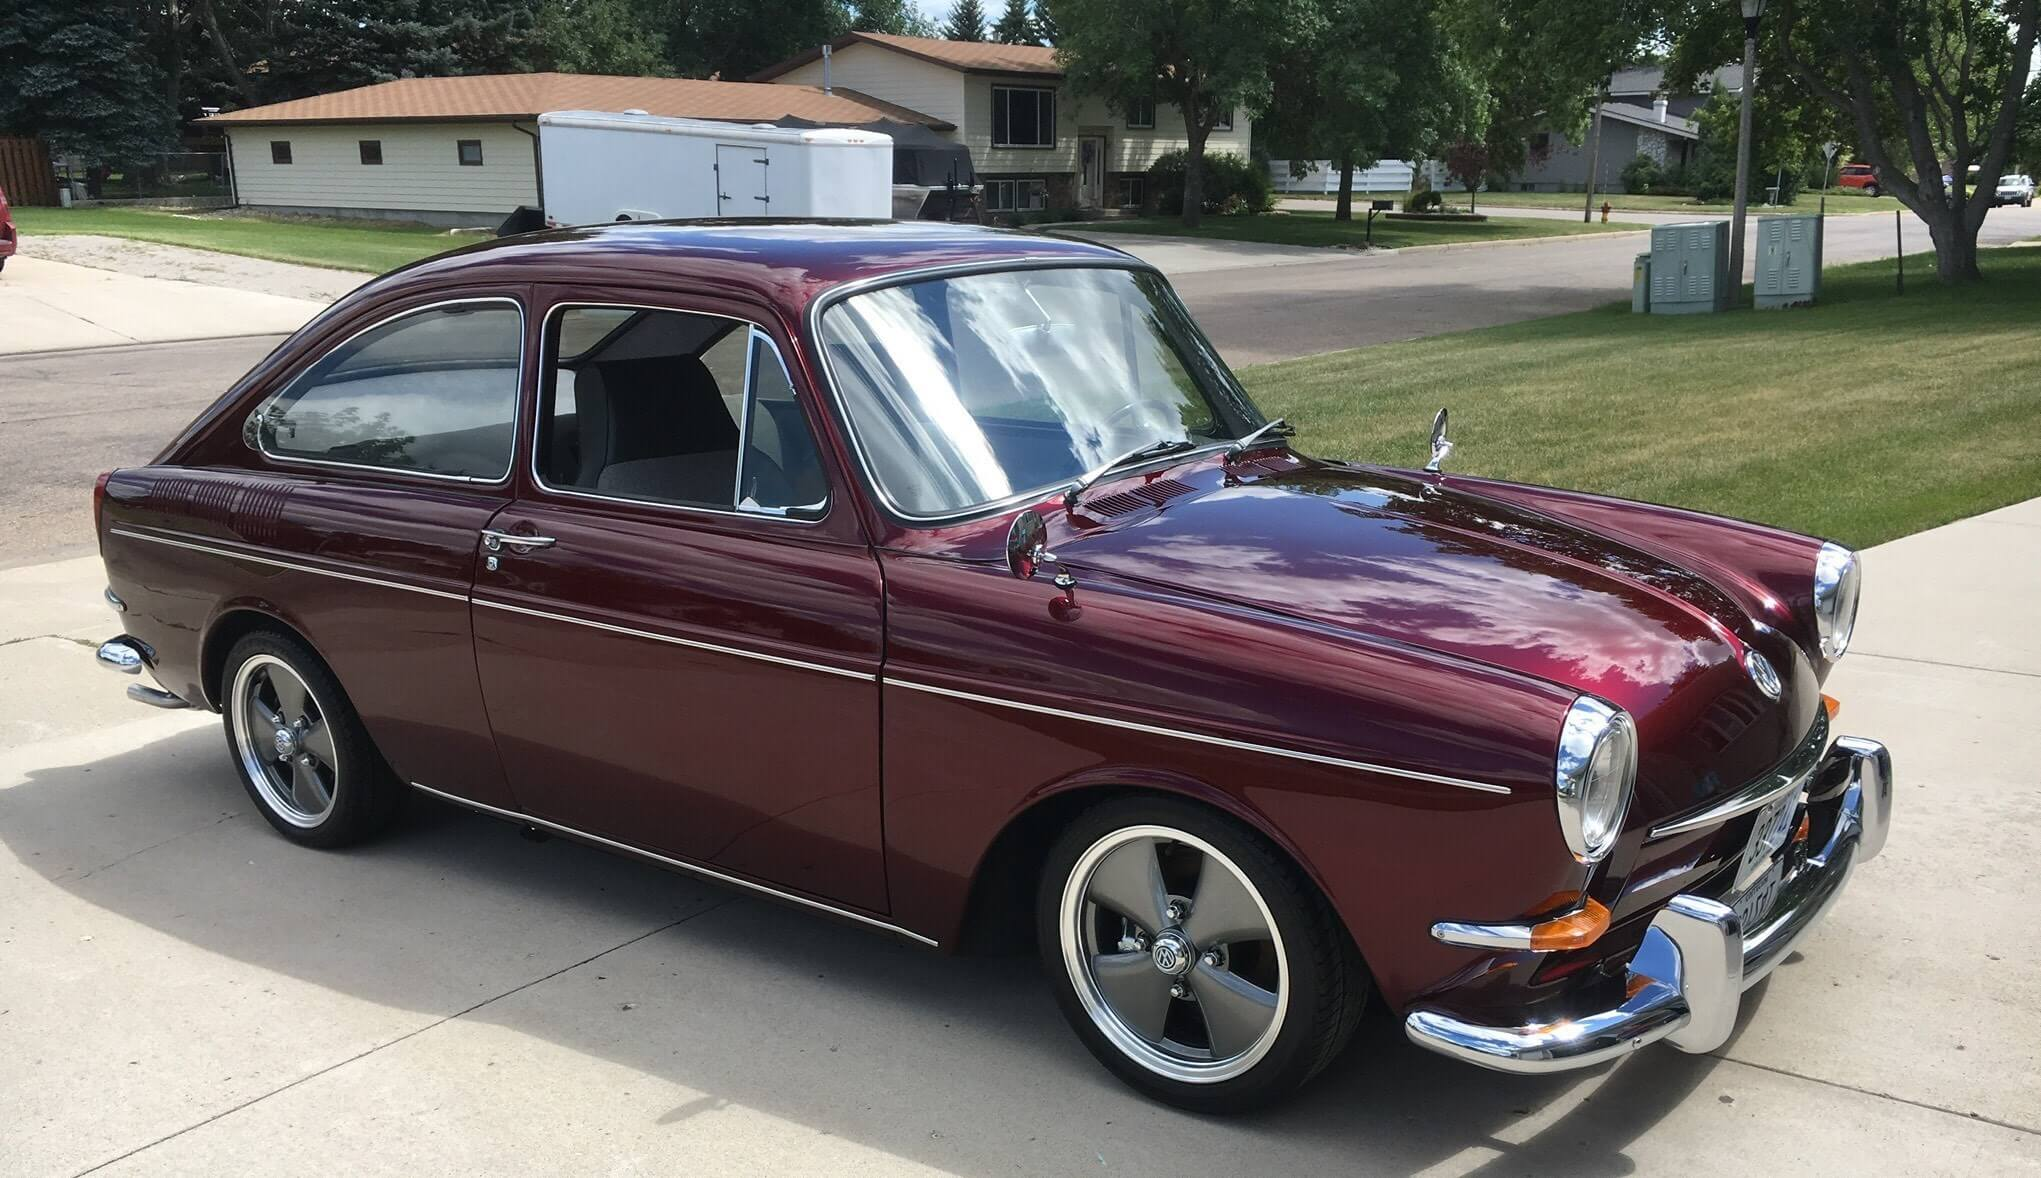 Lynn Pfenning tracked down his father's 1967 VW Type 3 which he bought new.